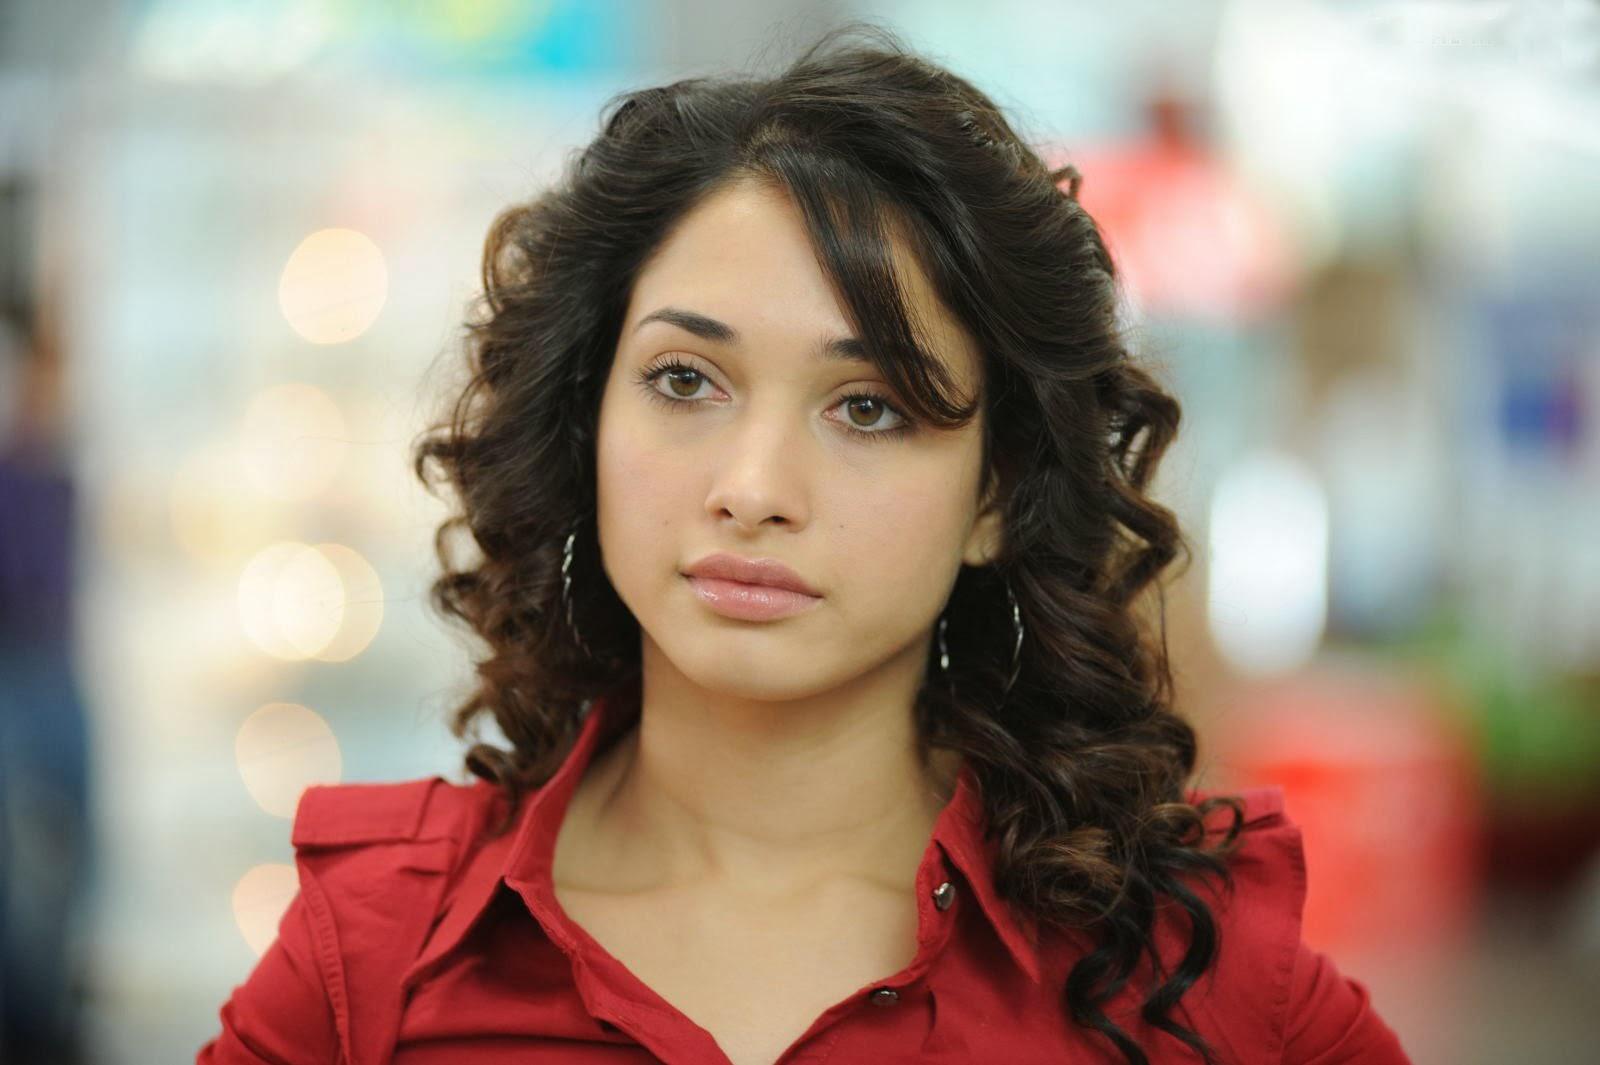 Tamanna Bhatia: Tamanna Bhatia Cute Images And Wallpapers